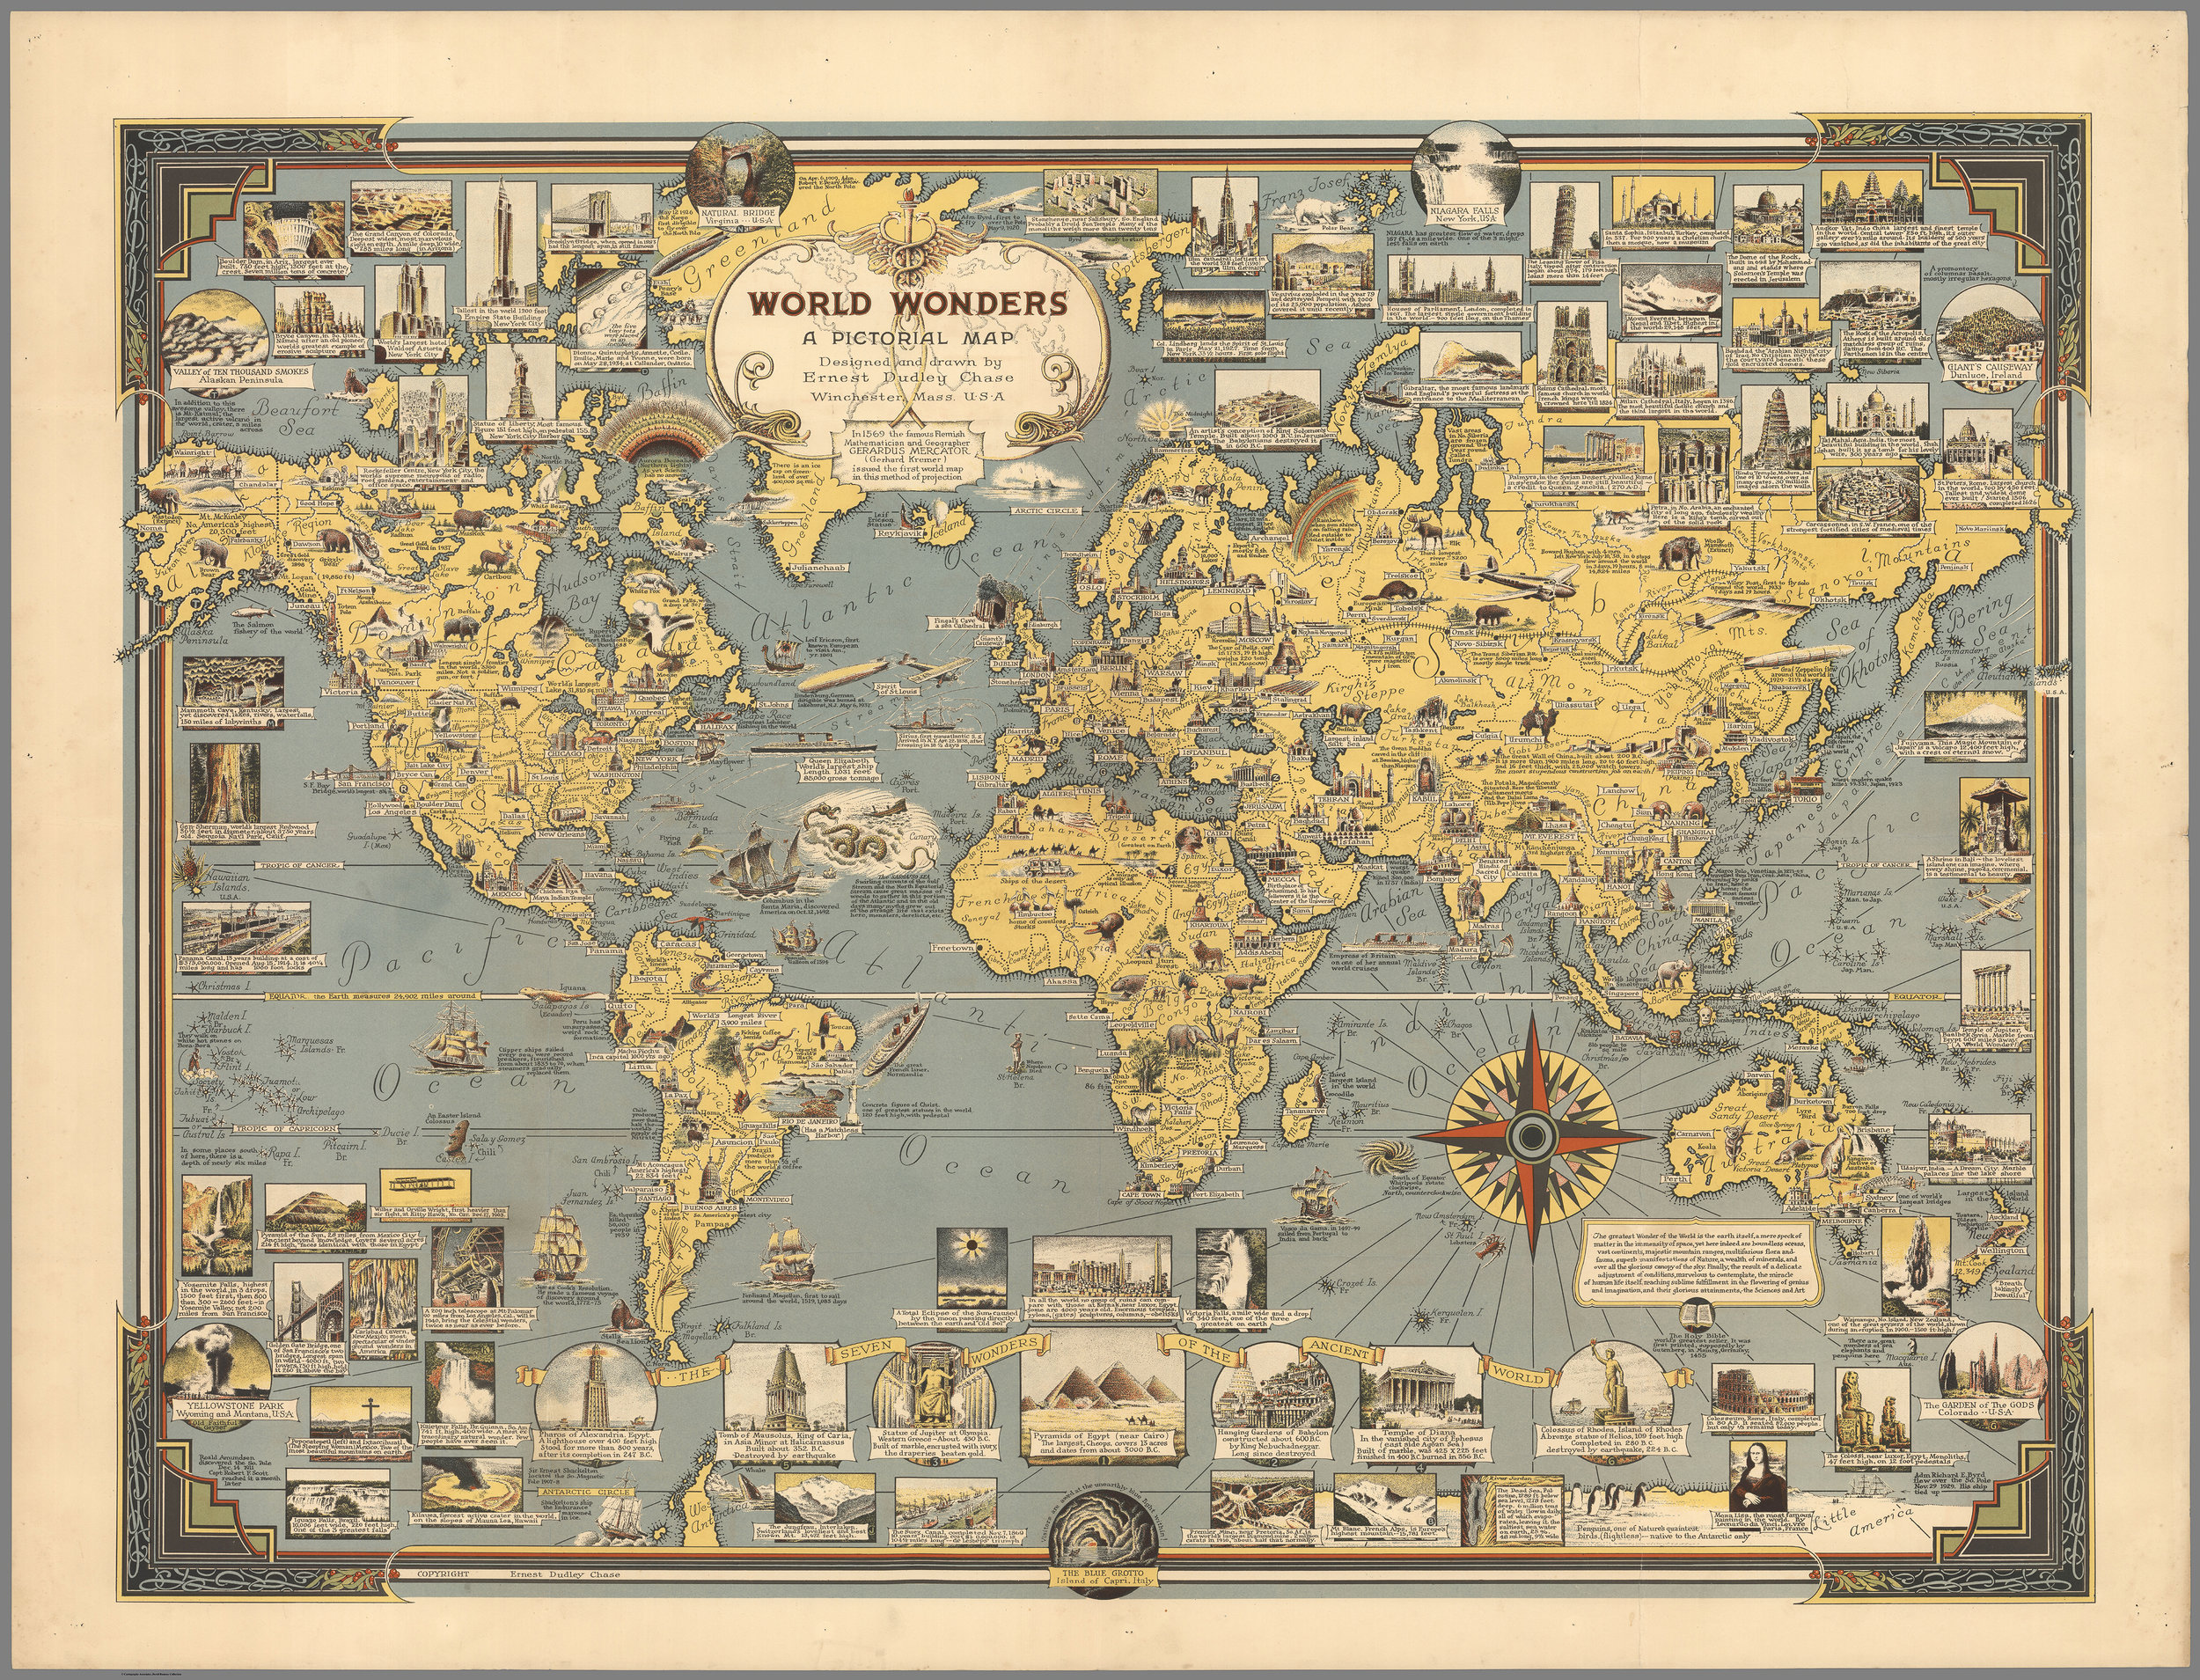 Designed and Drawn With Infinite Care: the Pictorial Maps of Ernest Dudley Chase - There's really nothing as visually satisfying as a pictorial map. Each densely packed, illustrated map is a visual feast for the eyes…